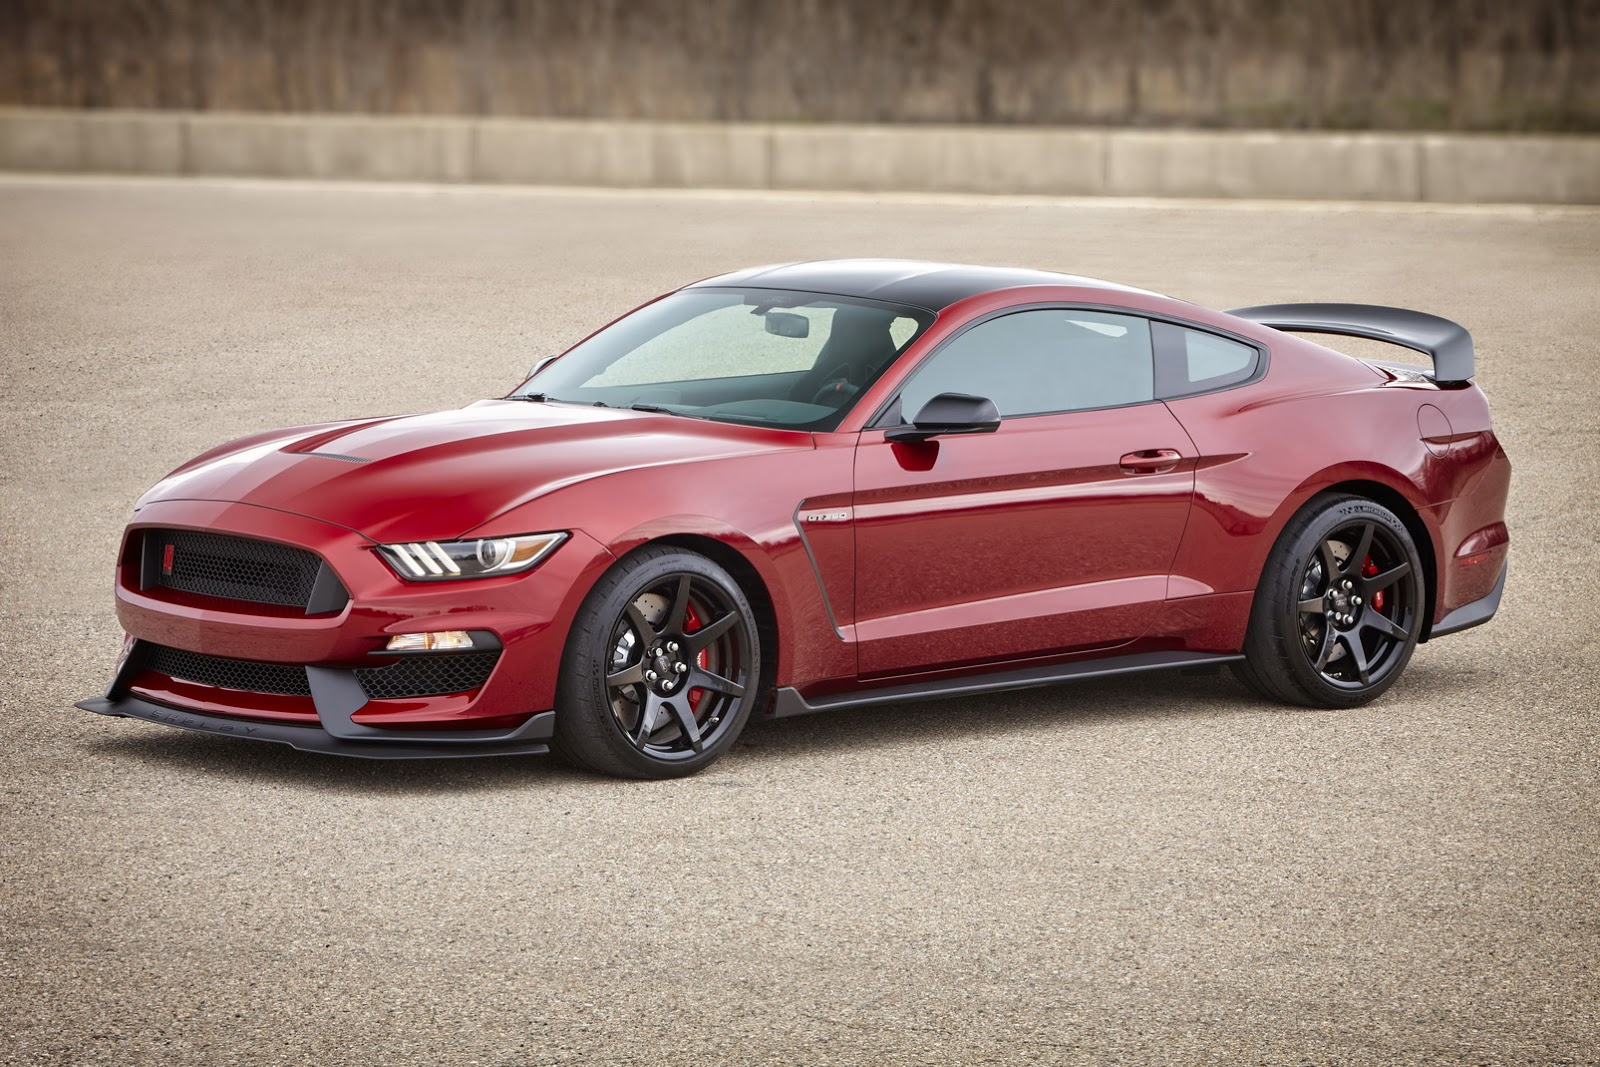 Gt350r Review >> Reviewer Calls The Shelby Gt350r The Ultimate Ford Mustang